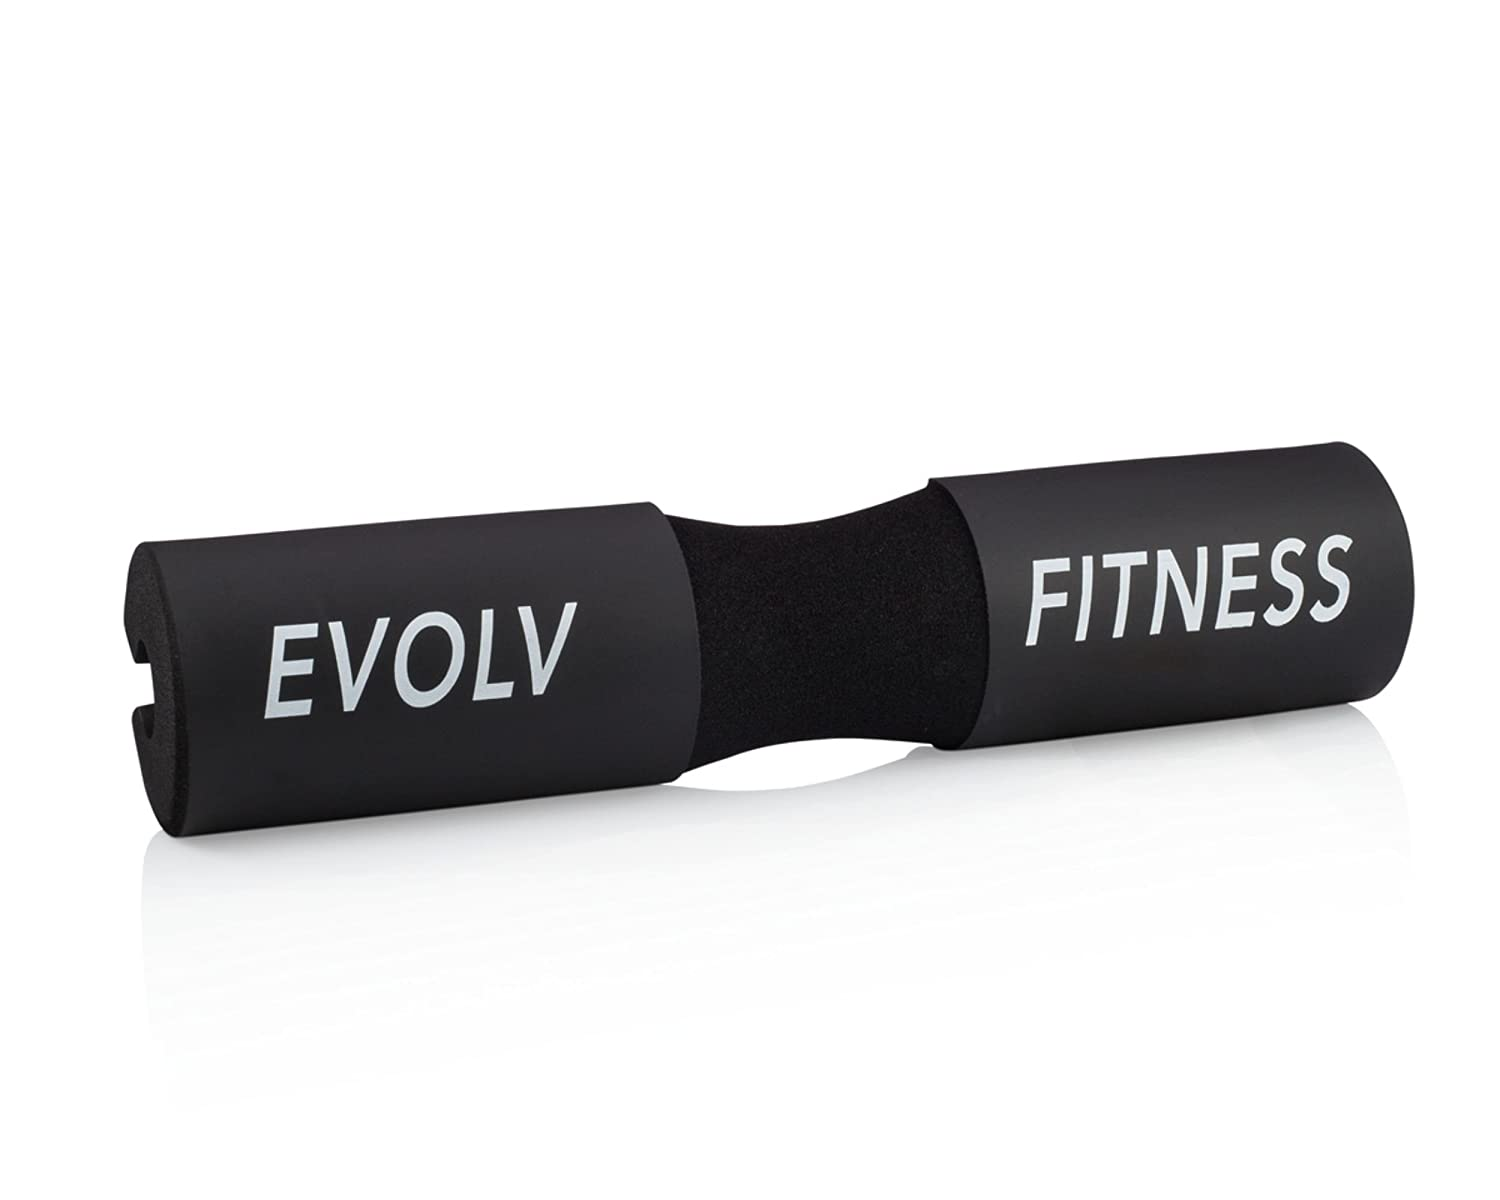 Evolv Fitness Squat Bar Pad